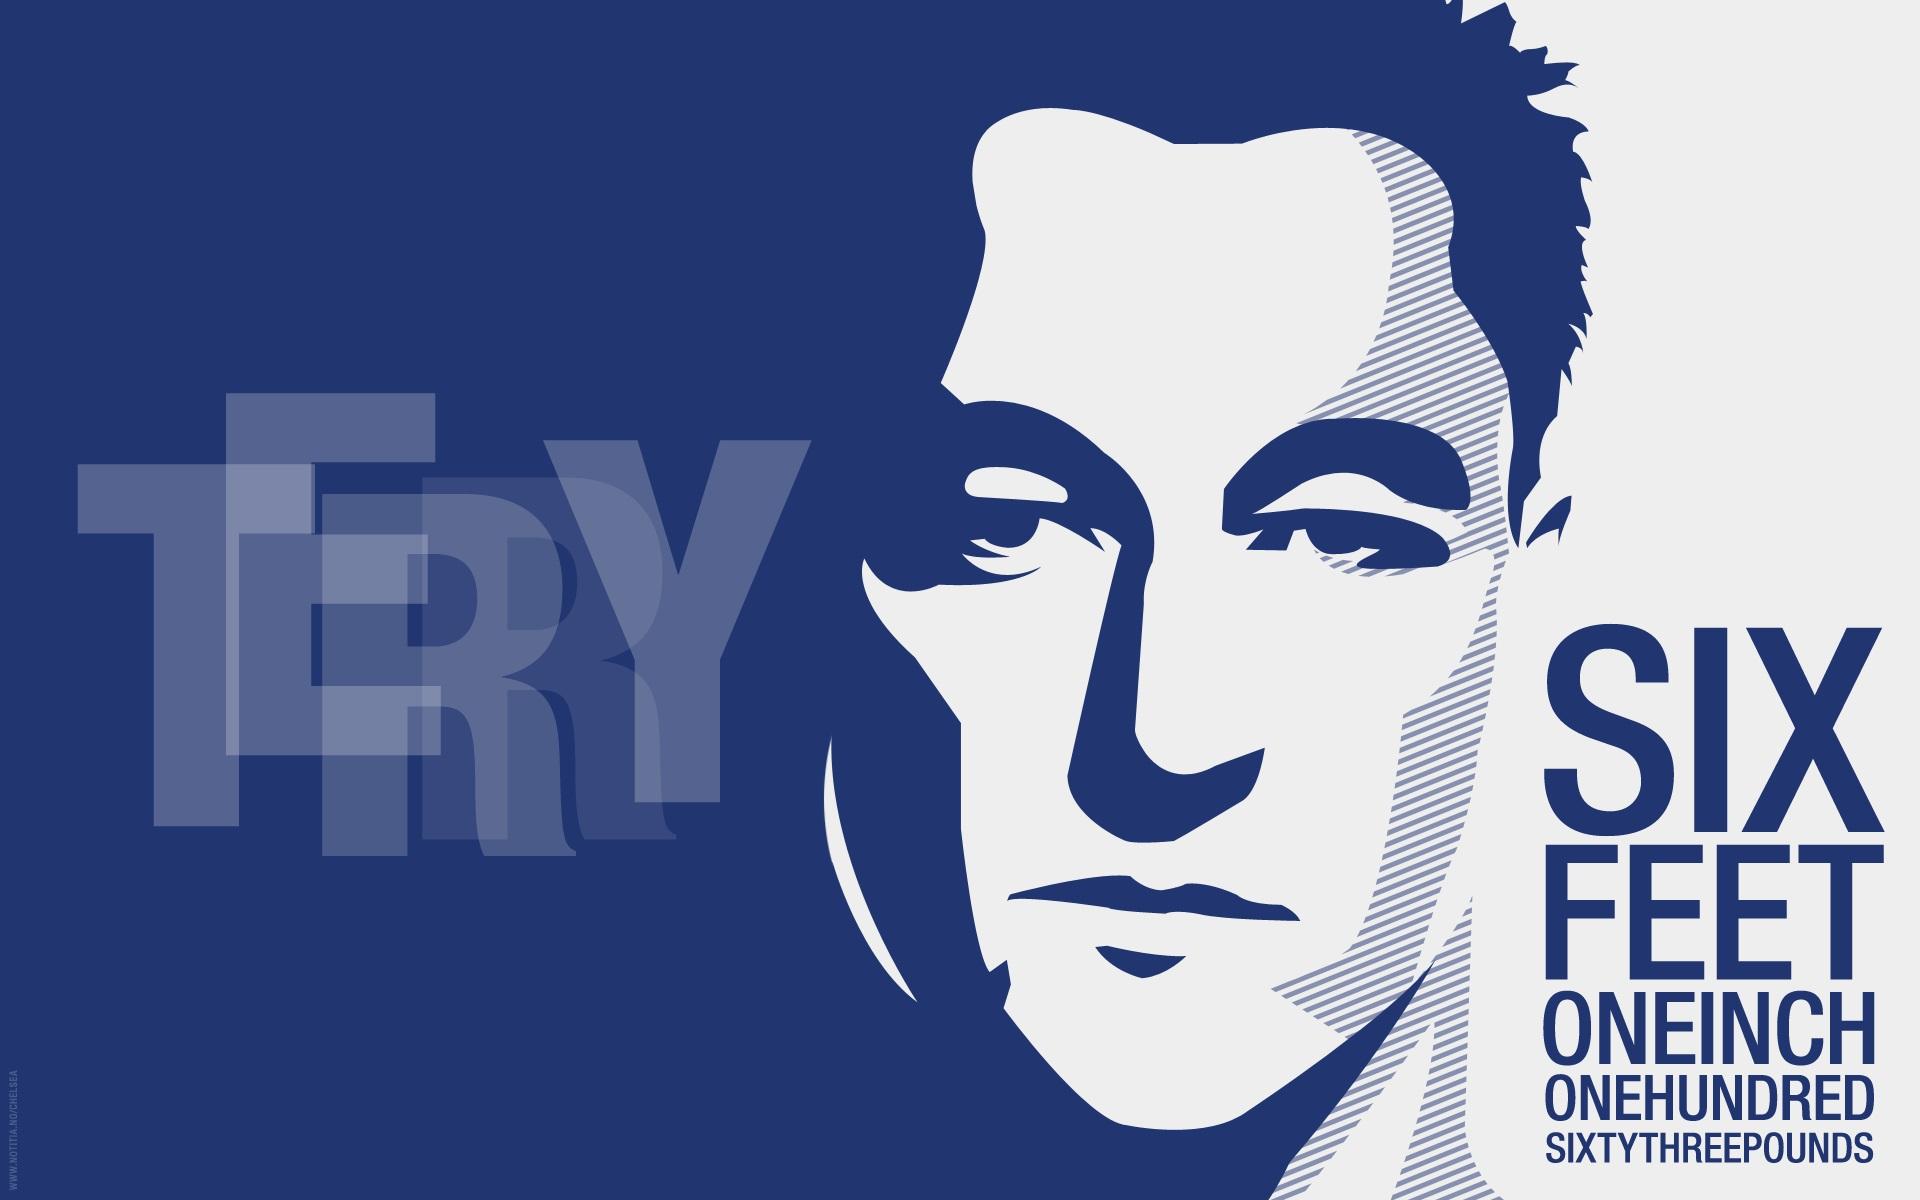 Terry Image Hd Chelsea